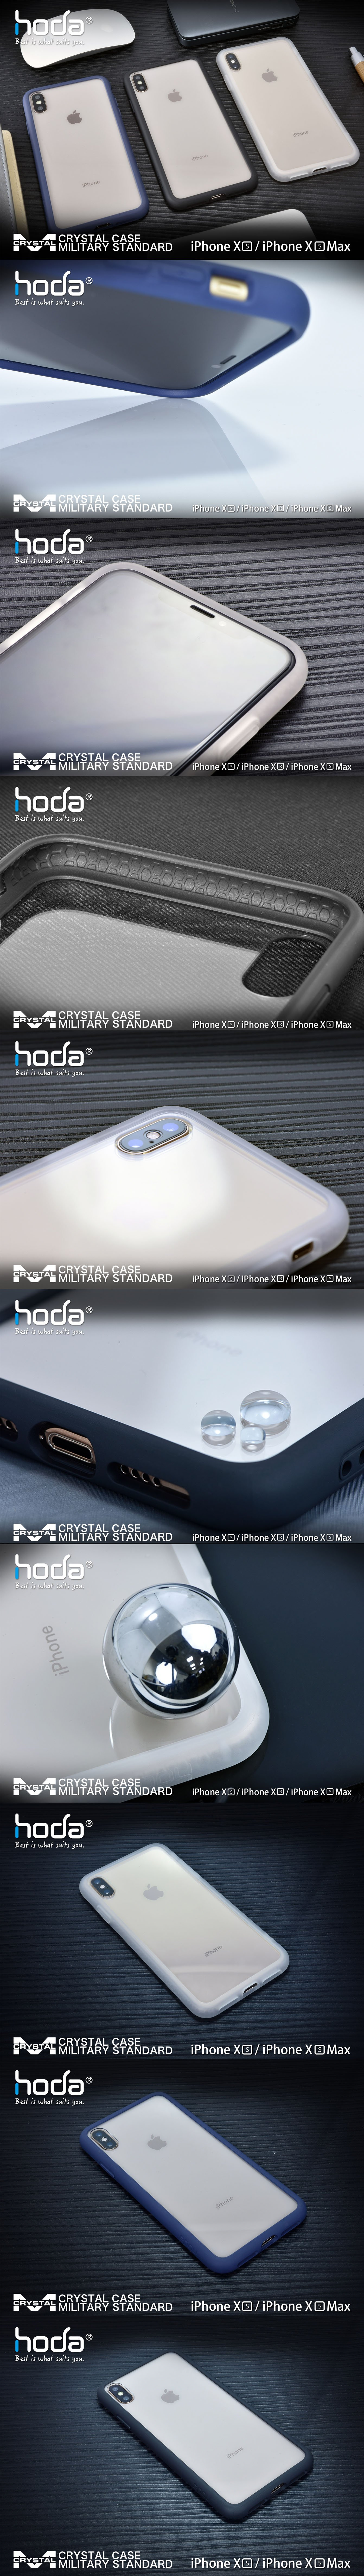 1-des-hoda-crystal-case-iphone-xs-max-g-forexengineer-authorised-malaysia-retailer